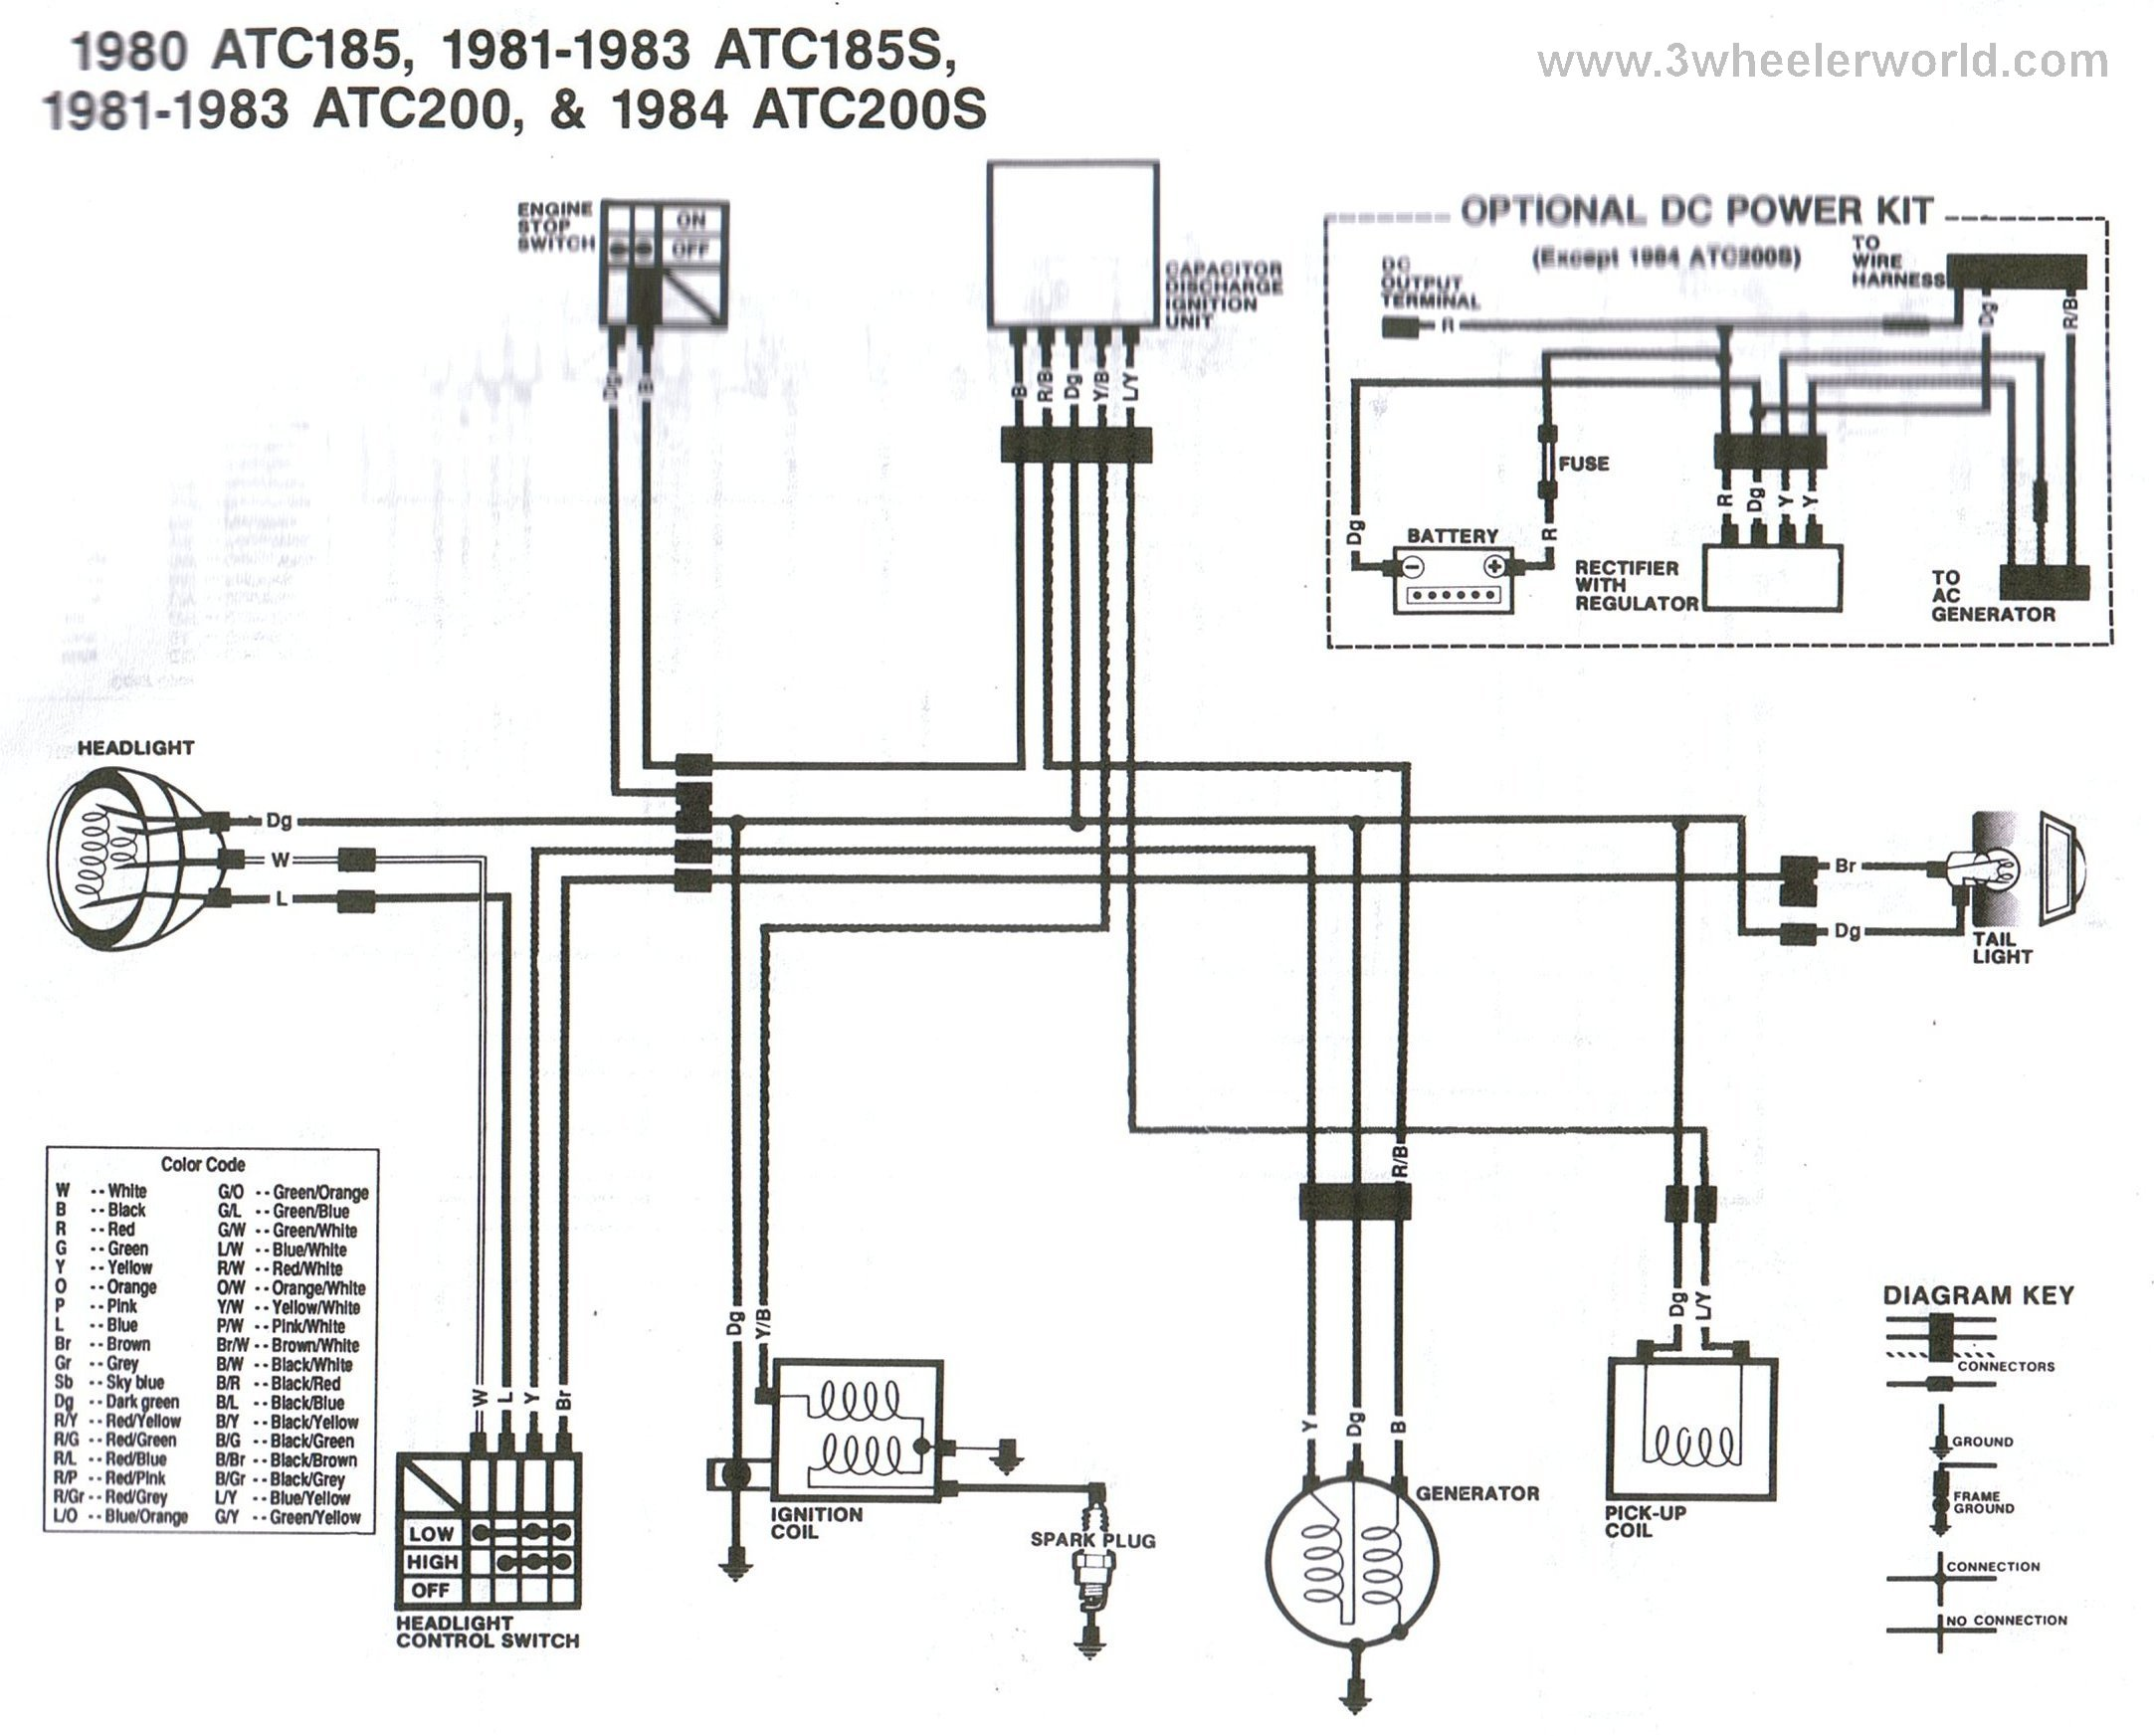 ATC185x185Sx200x200Sx80Thru84 3 wheeler world tech help honda wiring diagrams  at crackthecode.co